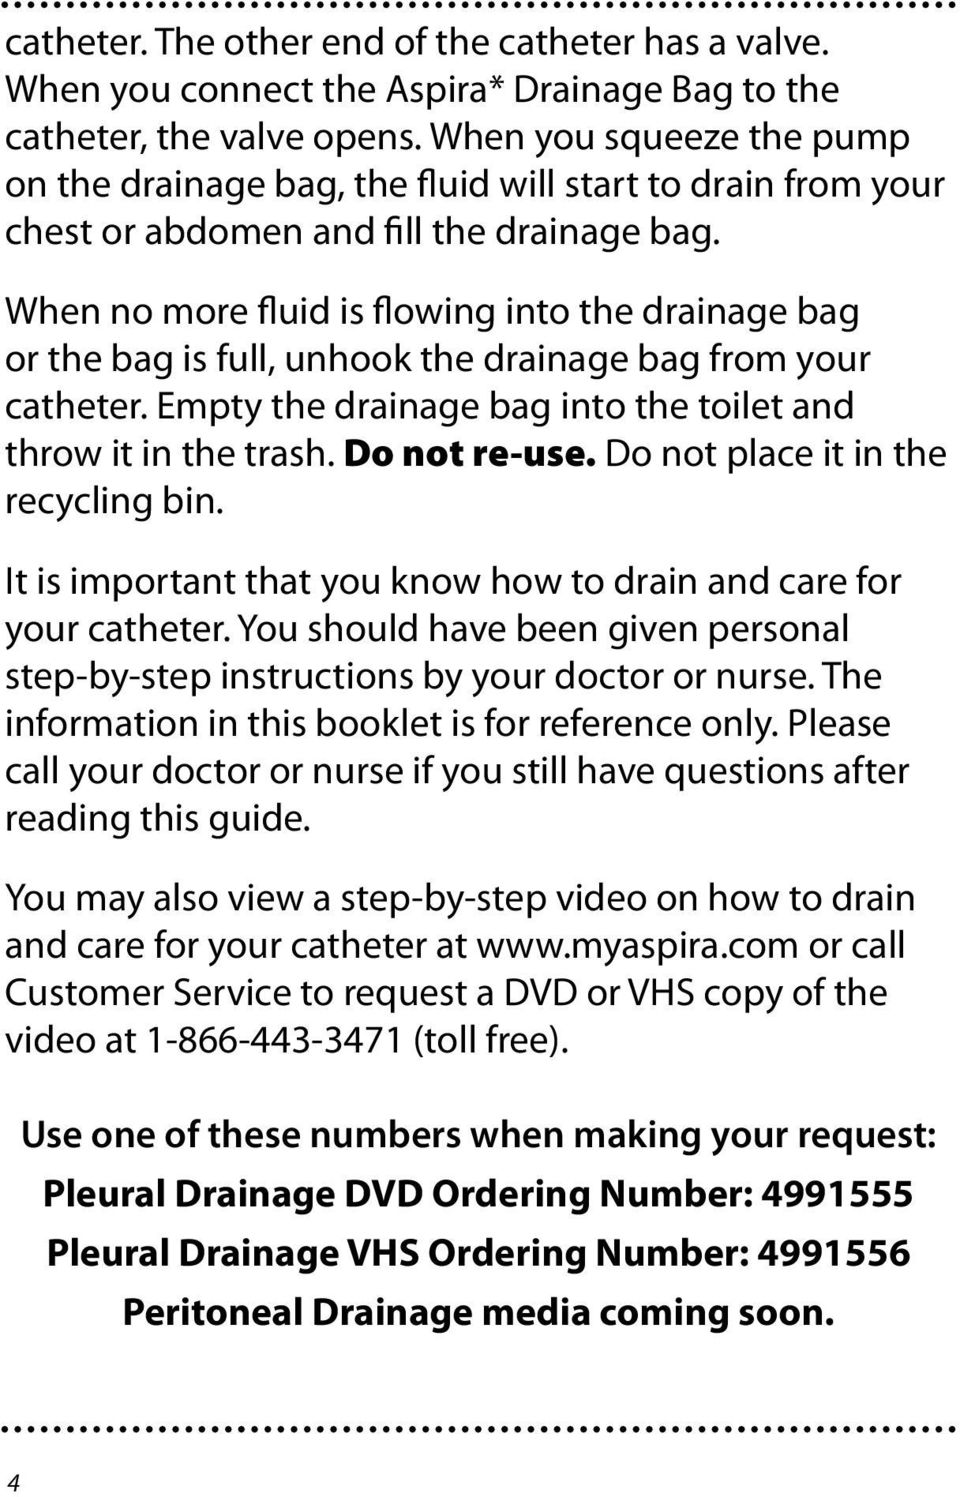 When no more fluid is flowing into the drainage bag or the bag is full, unhook the drainage bag from your catheter. Empty the drainage bag into the toilet and throw it in the trash. Do not re-use.